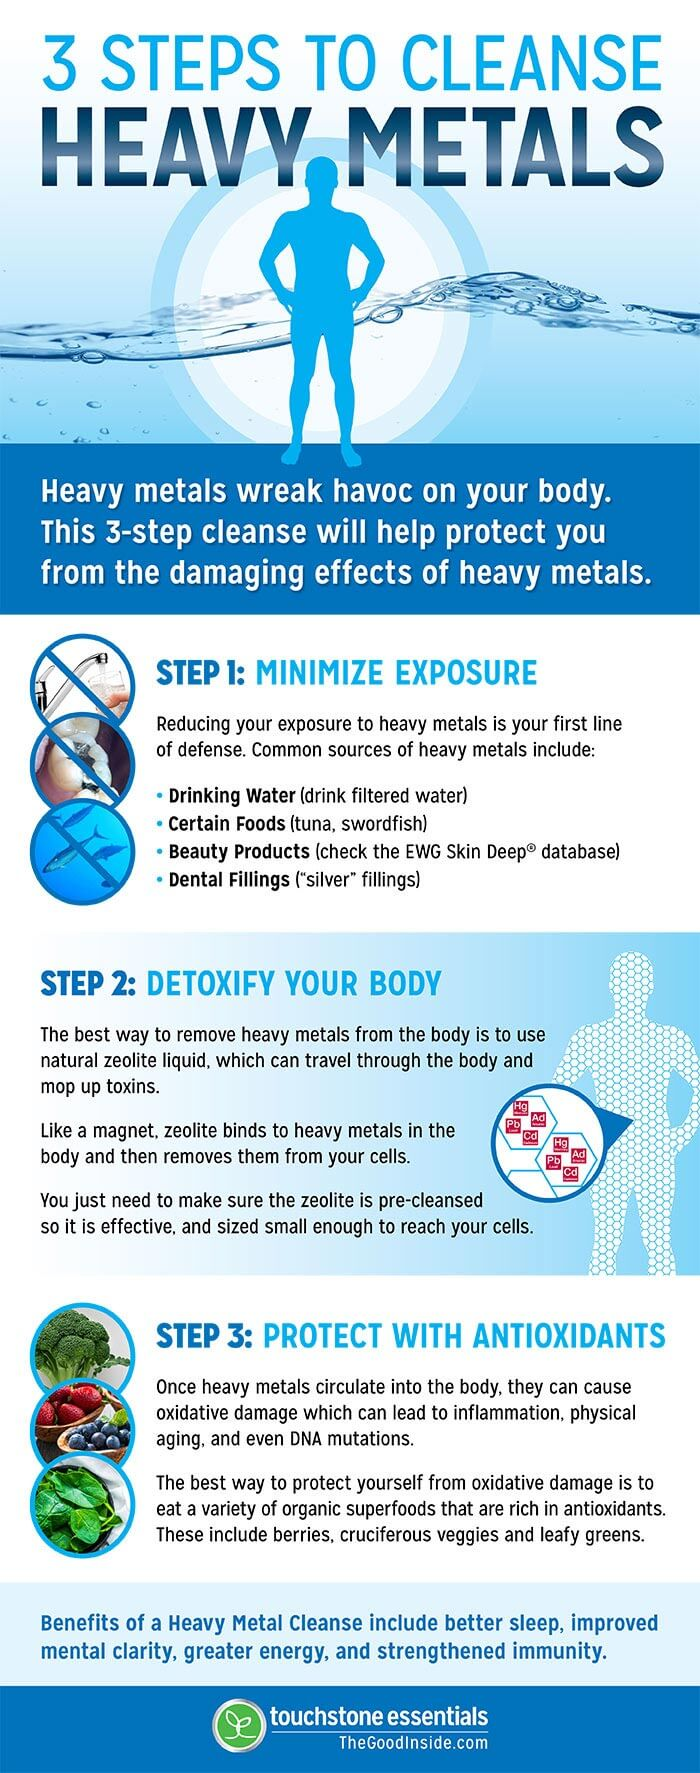 How to Protect Against Toxic Heavy Metals